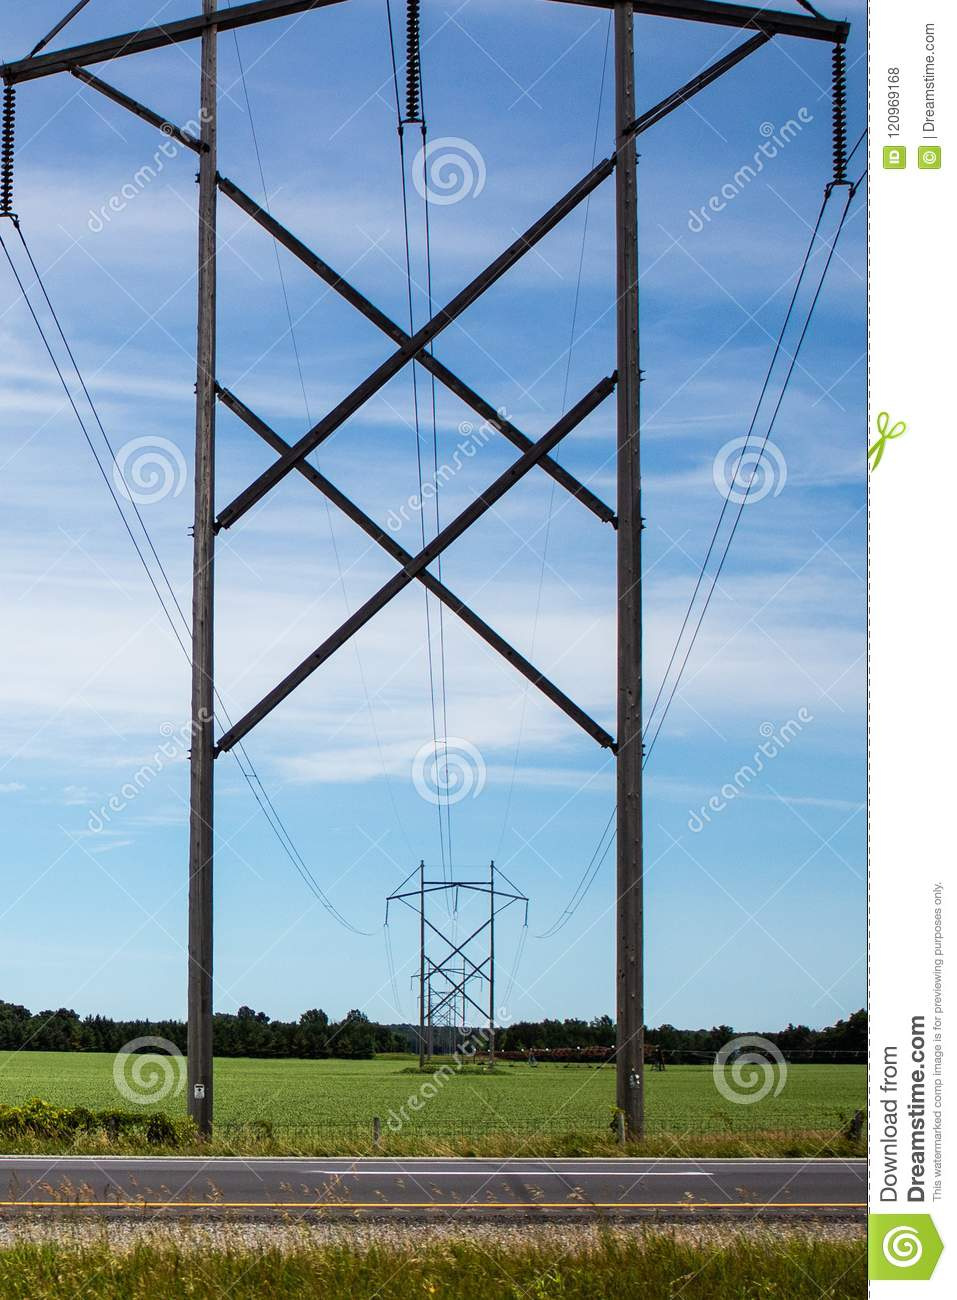 Power Lines and Pylons stock photo  Image of rural, cable - 120969168